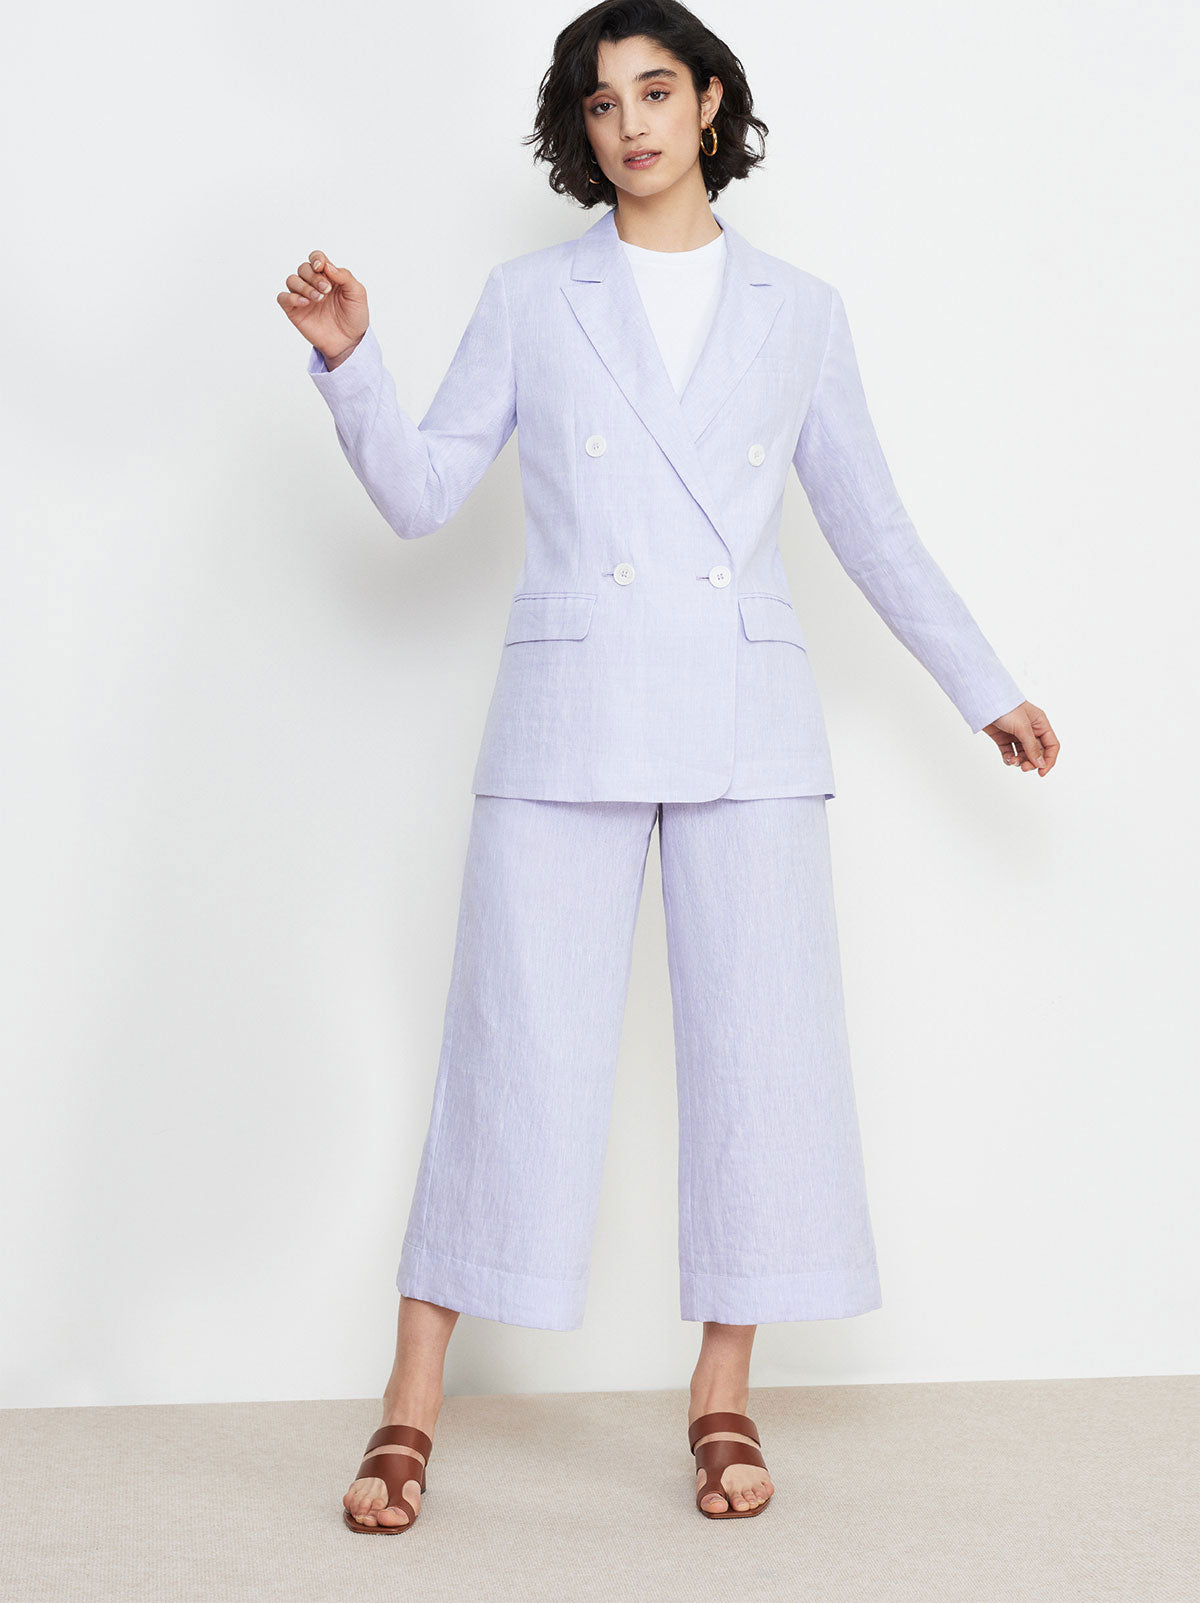 Dominique Lilac Linen Blazer by KITRI Studio